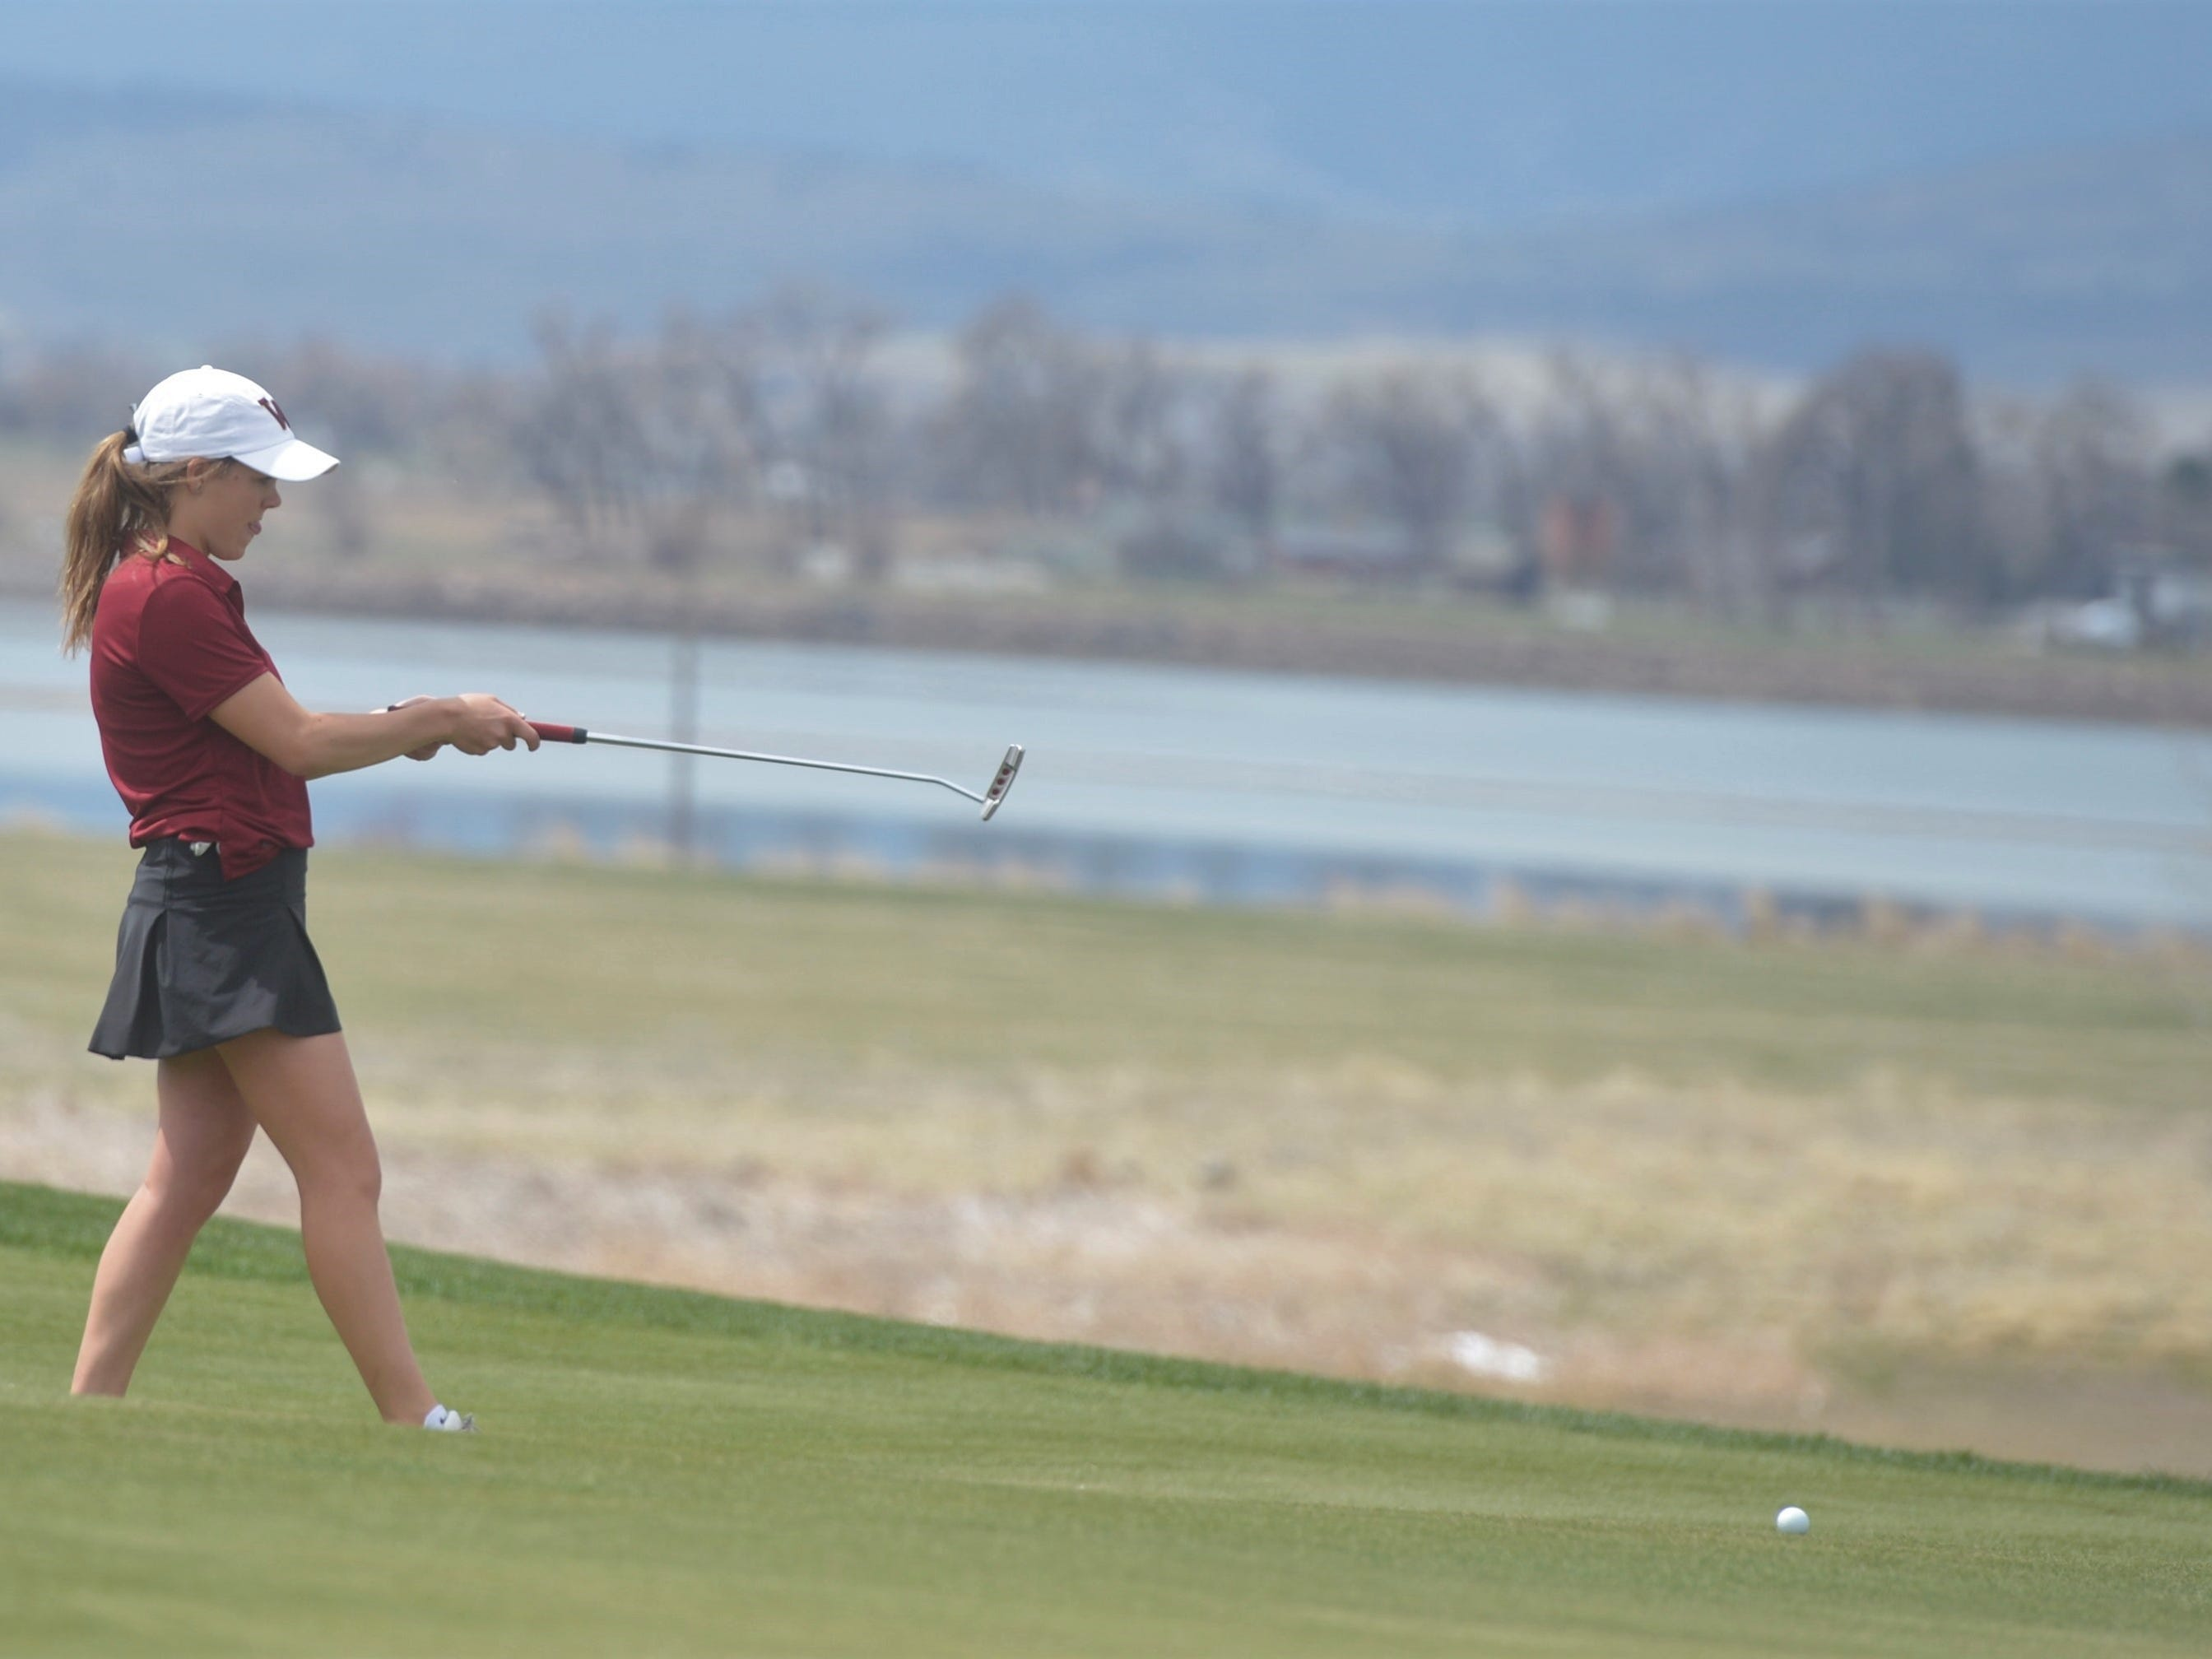 Windsor golfer Jessica Zapf lines up a putt at the Tri-Valley League match at TPC Colorado in Berthoud on Monday, April 15. Windsor won the event. It's the first Tournament Players Club course in the state.